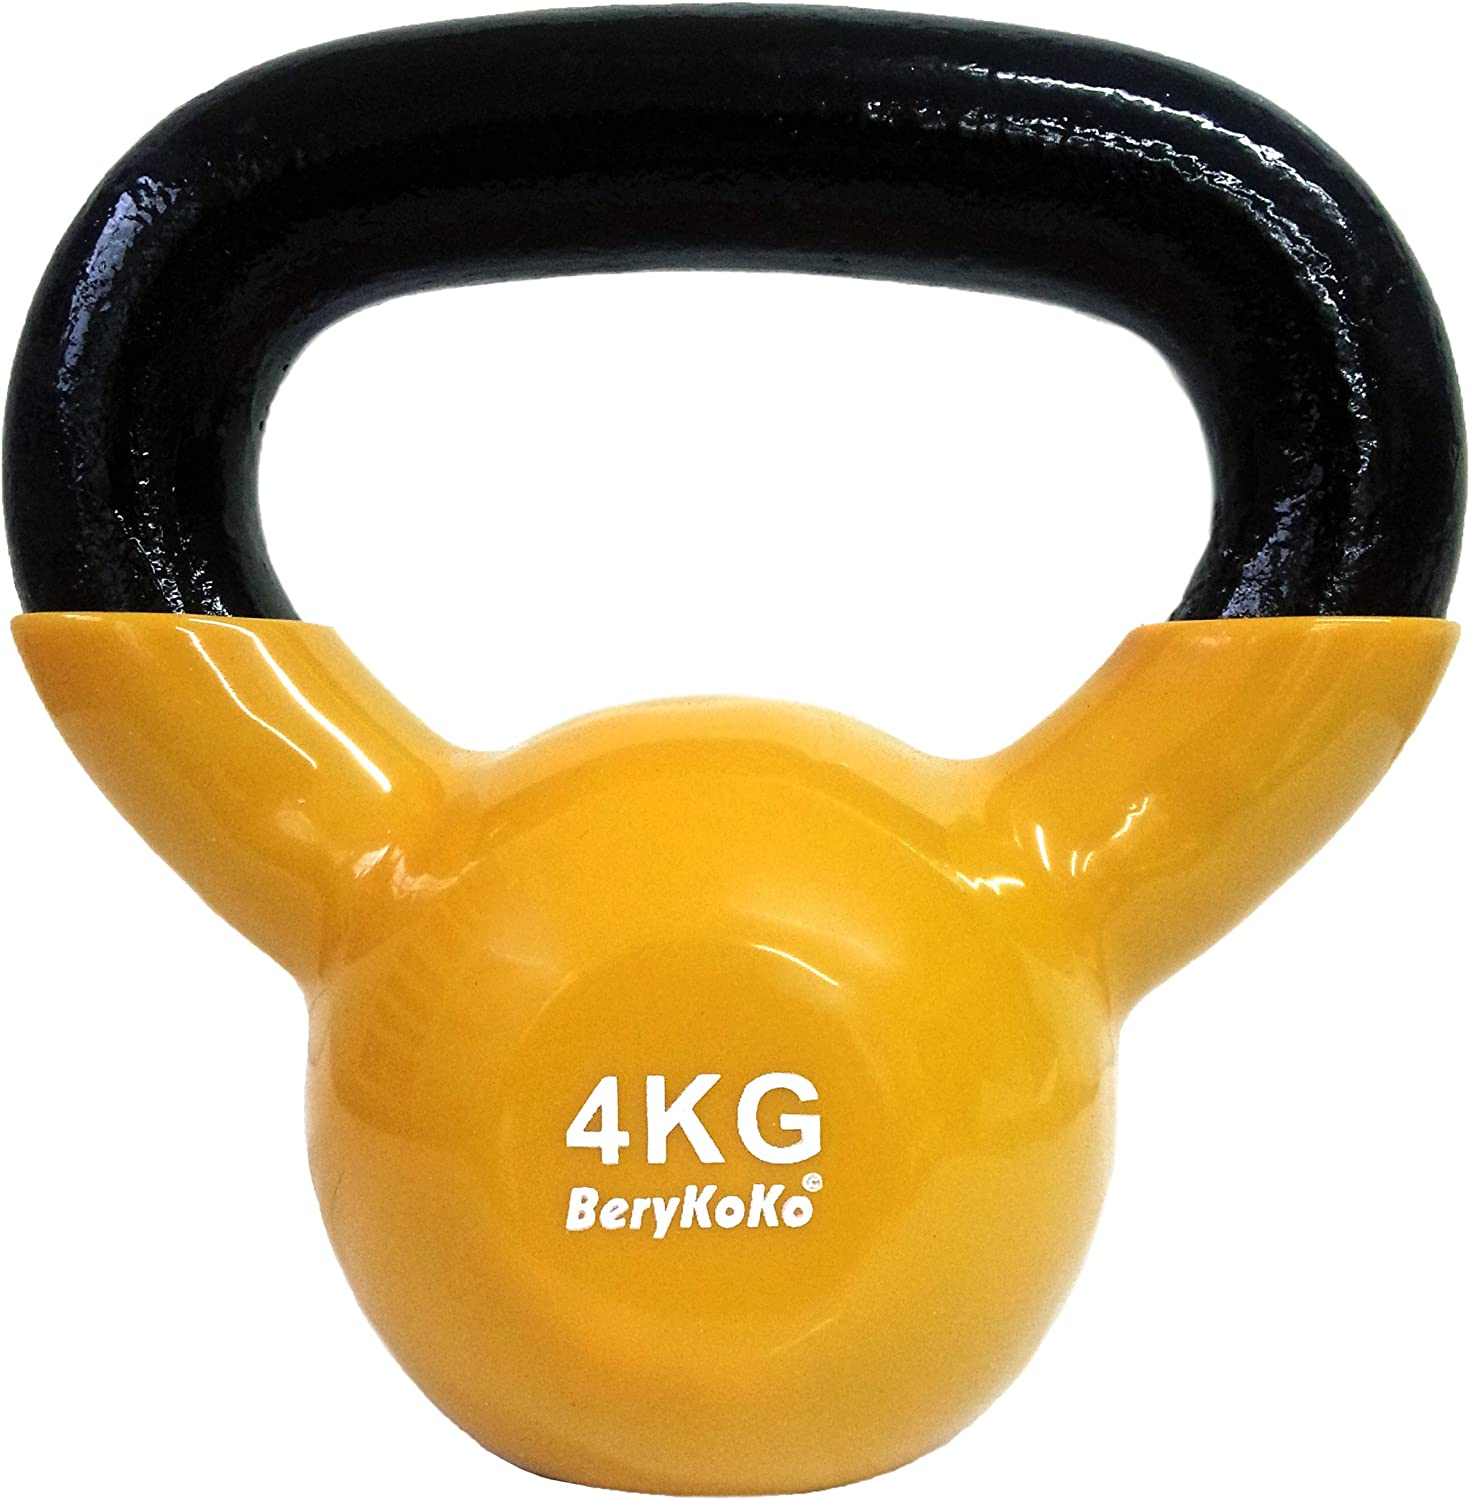 BeryKoKo Kettlebell (color Yellow 4kg) Coating Exercise genuine 18month Warranty 4kg 6kg 8kg 10kg 12kg 16kg 20kg 24kg Body stem Training Muscle Training Strength Training Shape up ([h] 4kg (Yellow))